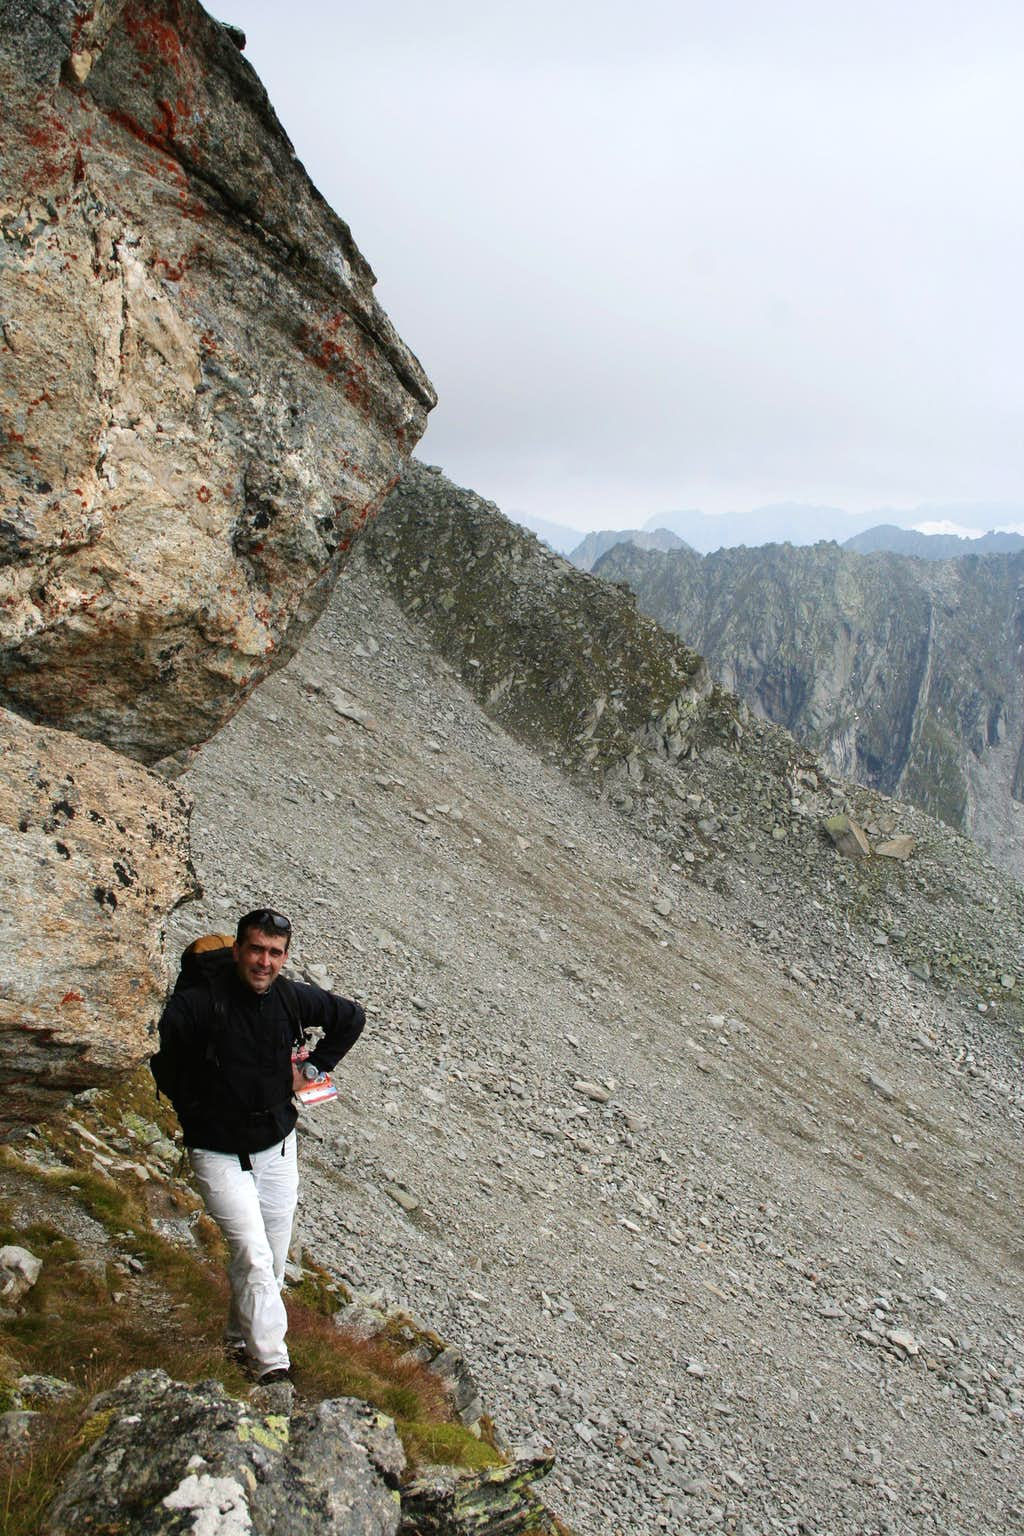 There are some overhanging rocks on Rauhkofel - but no need to climb them